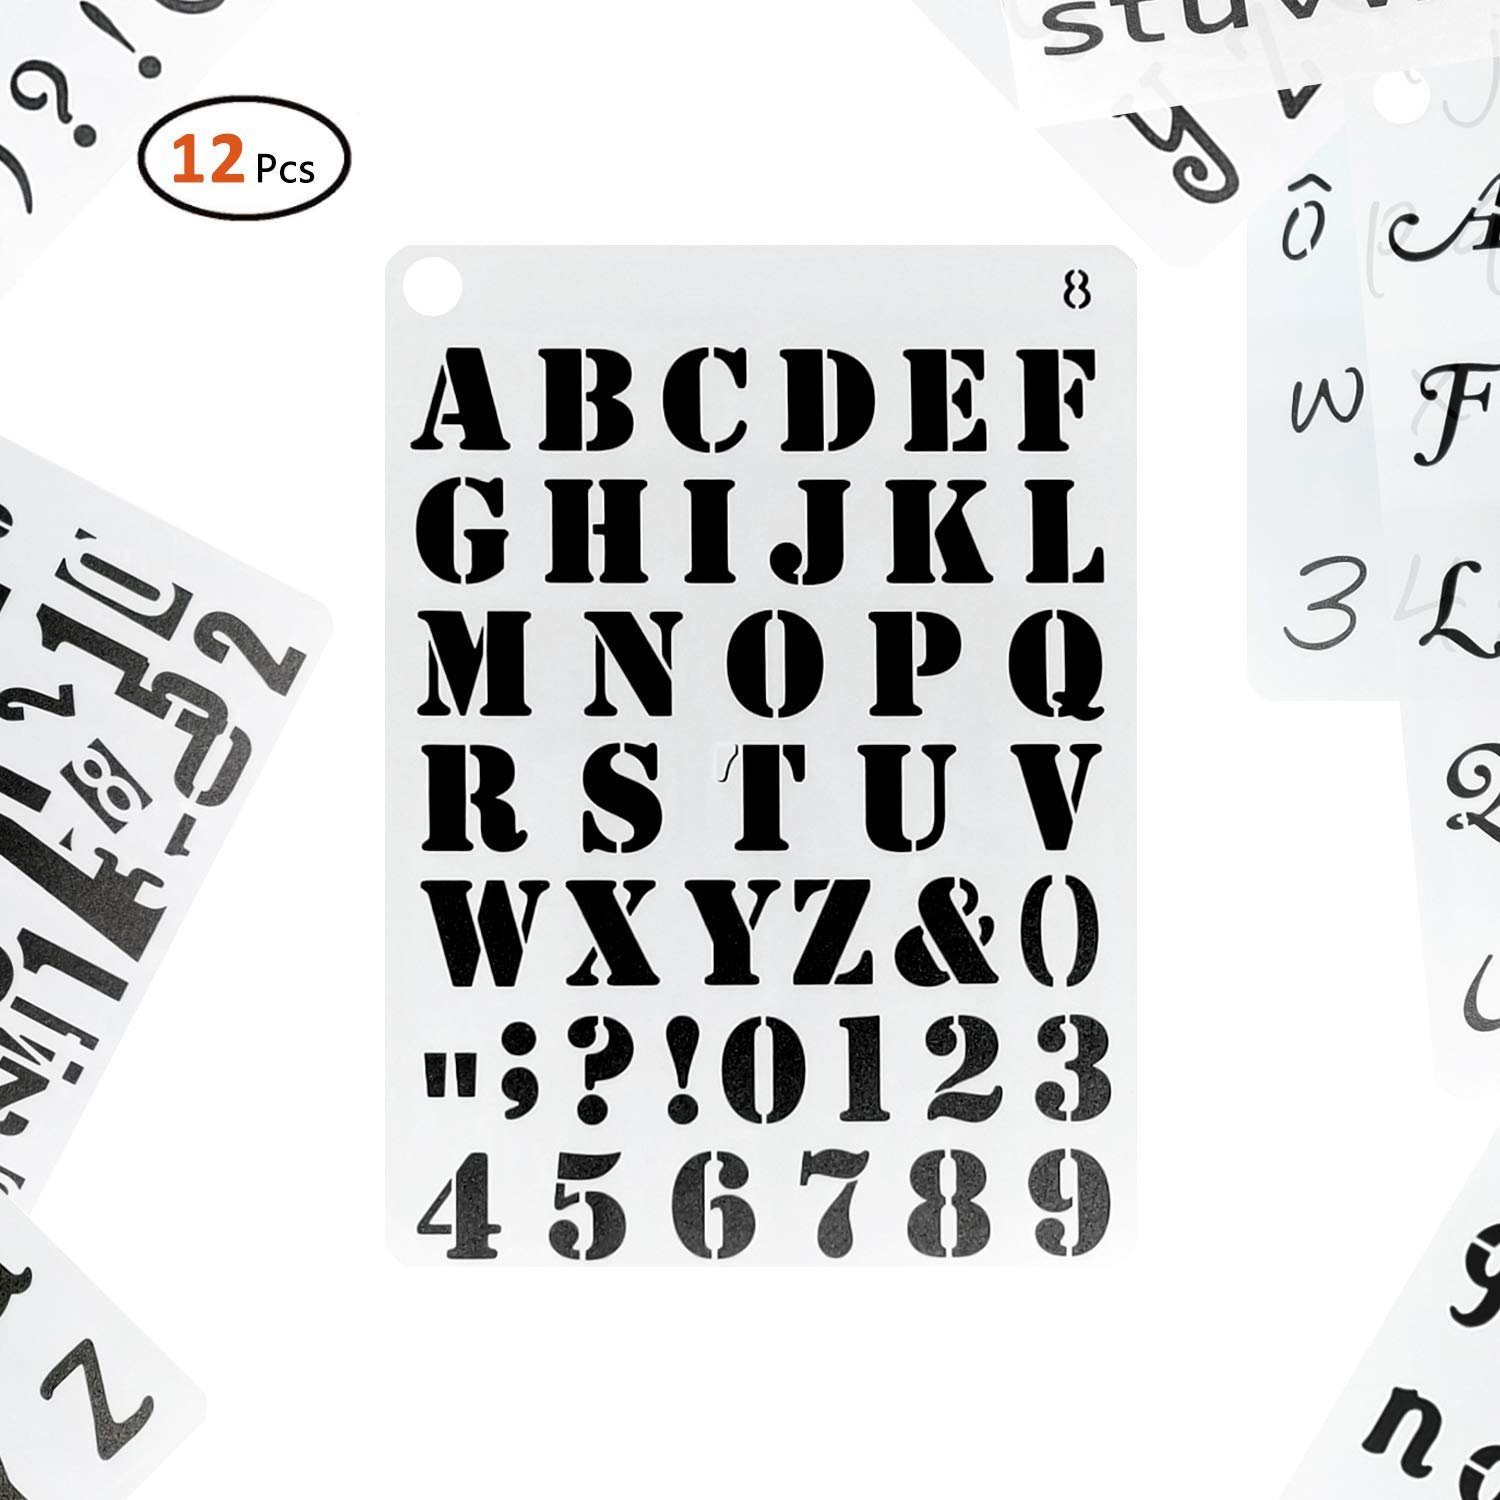 AKOAK 2 Piece Set Brass English alphabets Stencils and Arabic Numerals Stencils with Symbols,Letter Stencils Number Stencils for Drawing,Bookmarks,Templates